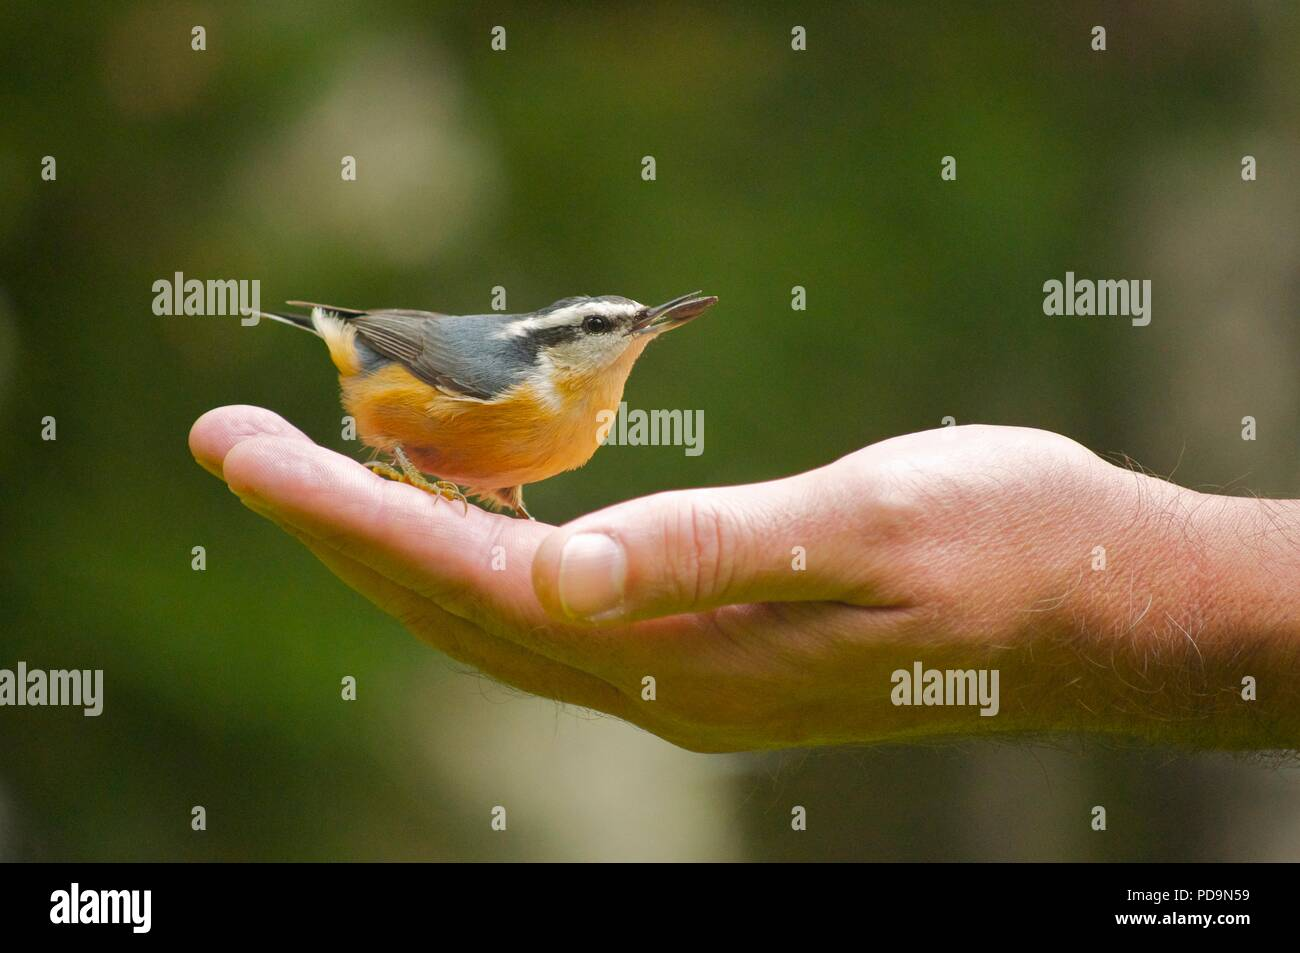 Bird sitting in palm of hand (Red-breasted nuthatch)  (Sitta canadensis) (bird sat in someones hand) (holding bird) (hand feeding birds) - Stock Image